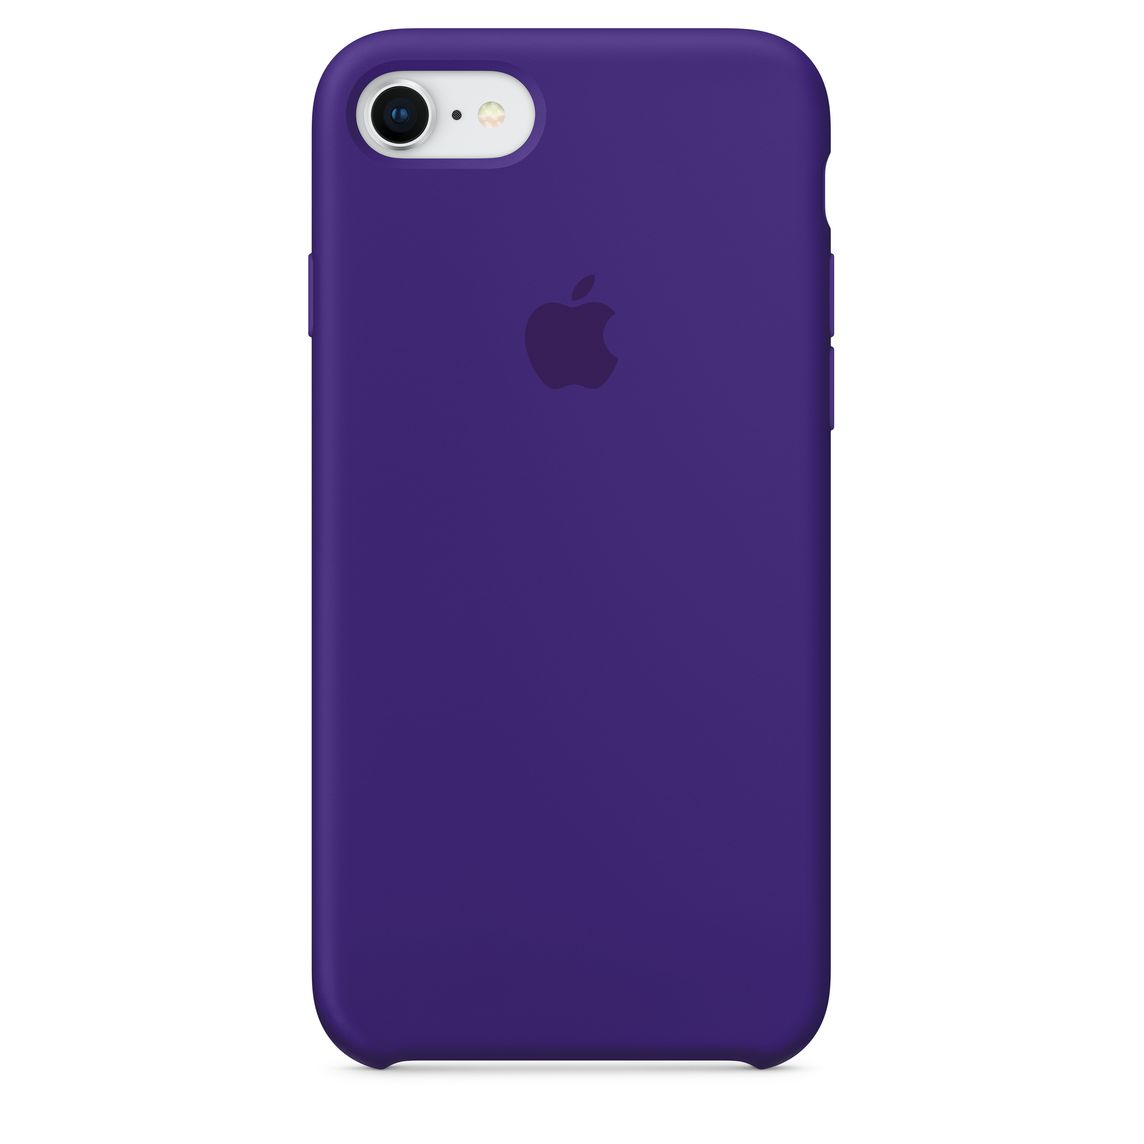 wholesale dealer 1f6e5 907a5 iPhone 8 / 7 Silicone Case - Ultra Violet